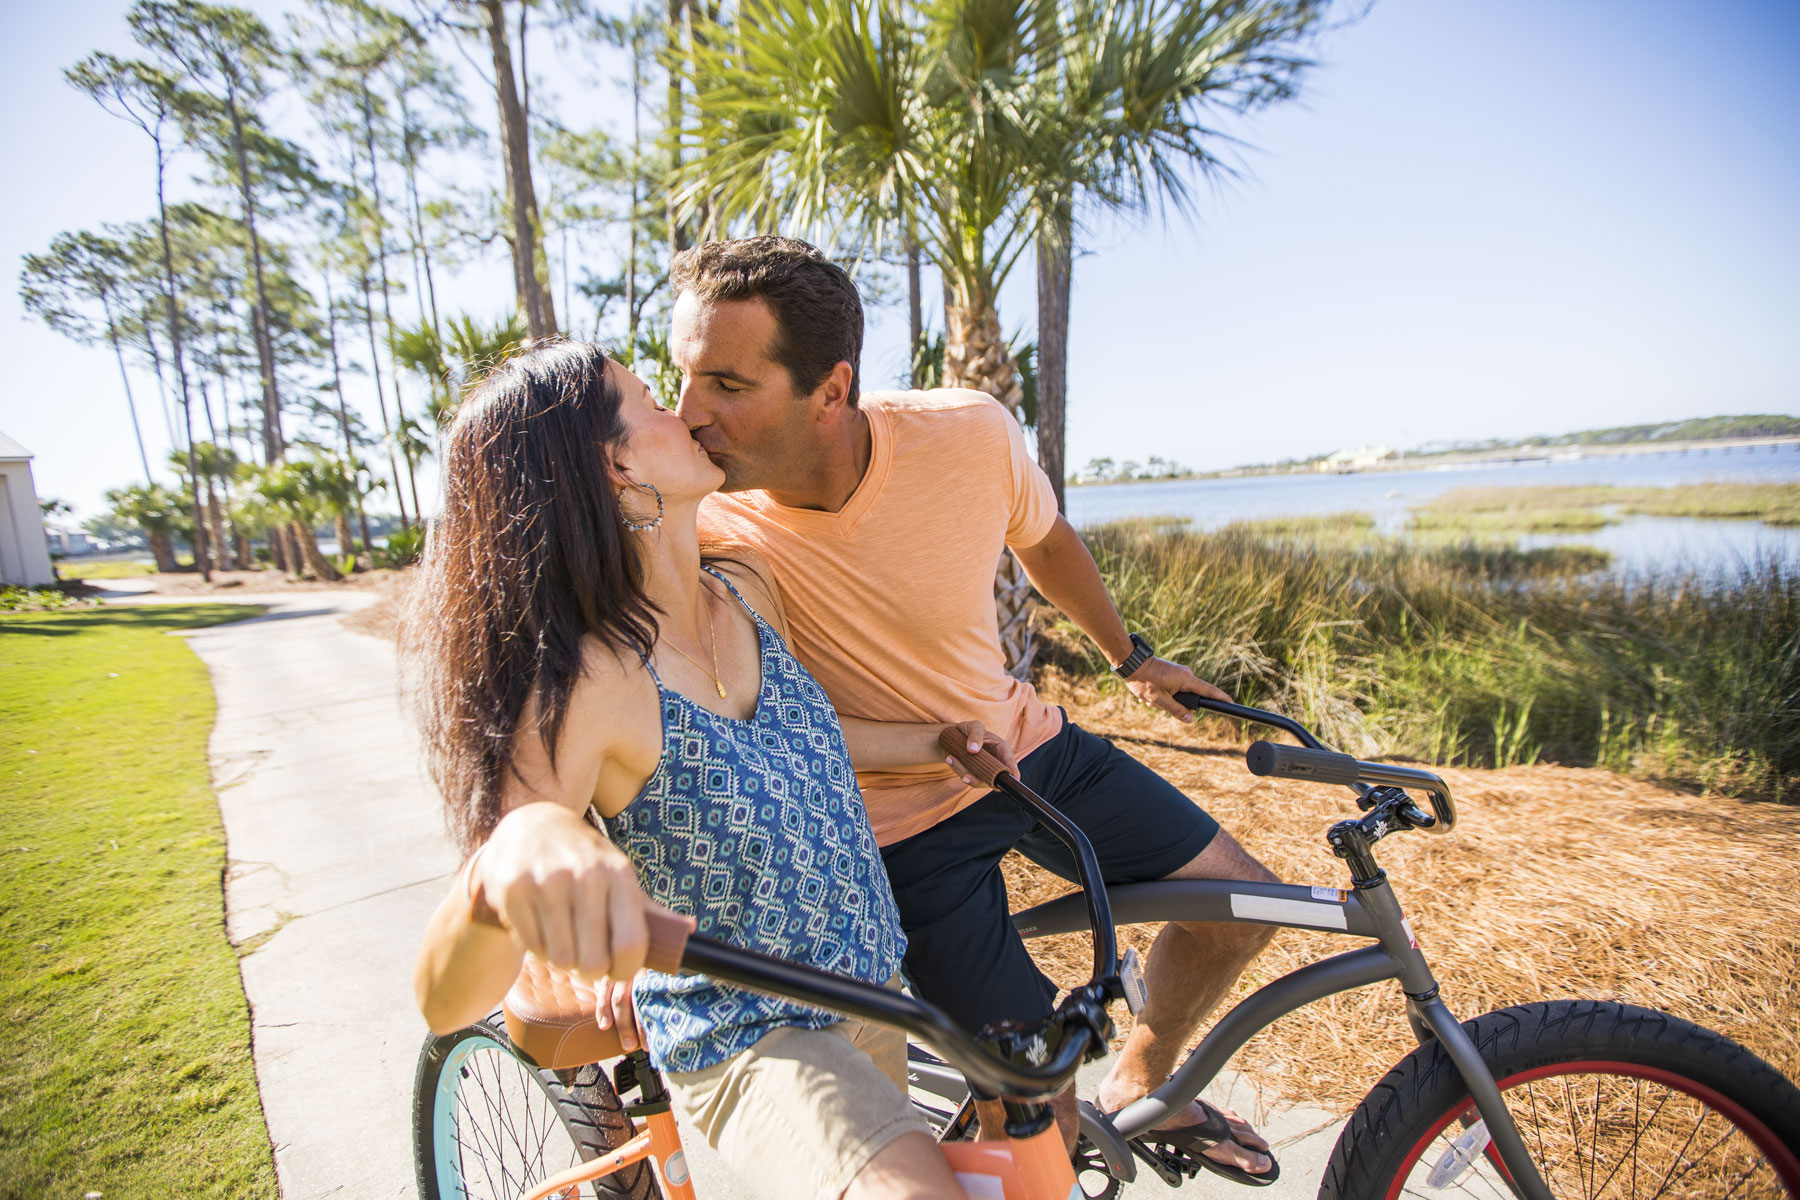 Man and WomanKissing on Bikes